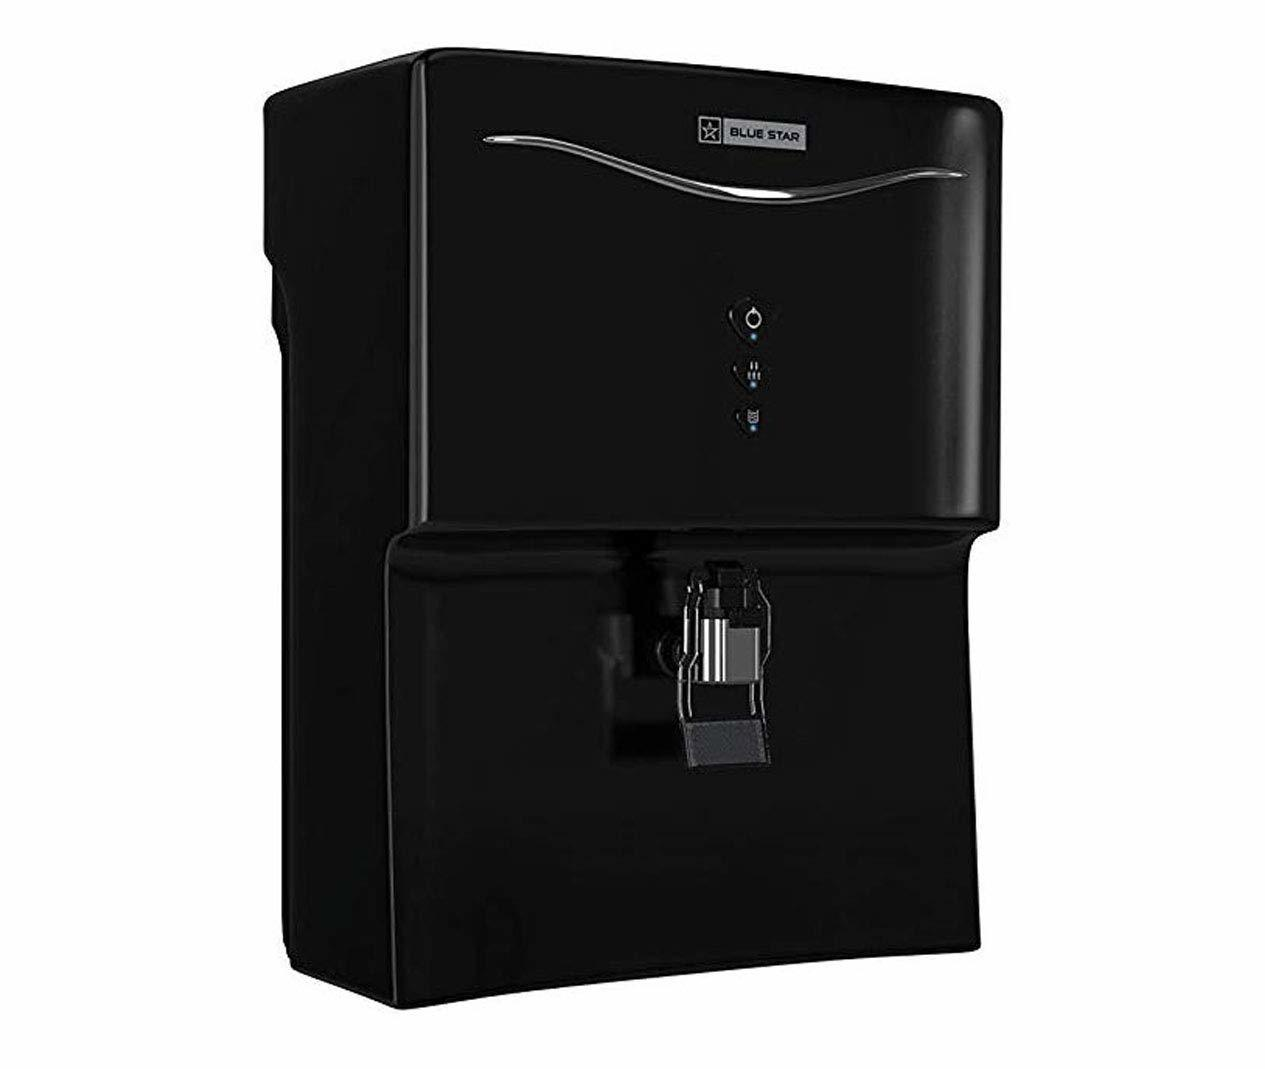 Blue Star Aristo RO+UV+UF AR5BLAM01 7-Liter Water Purifier, Black